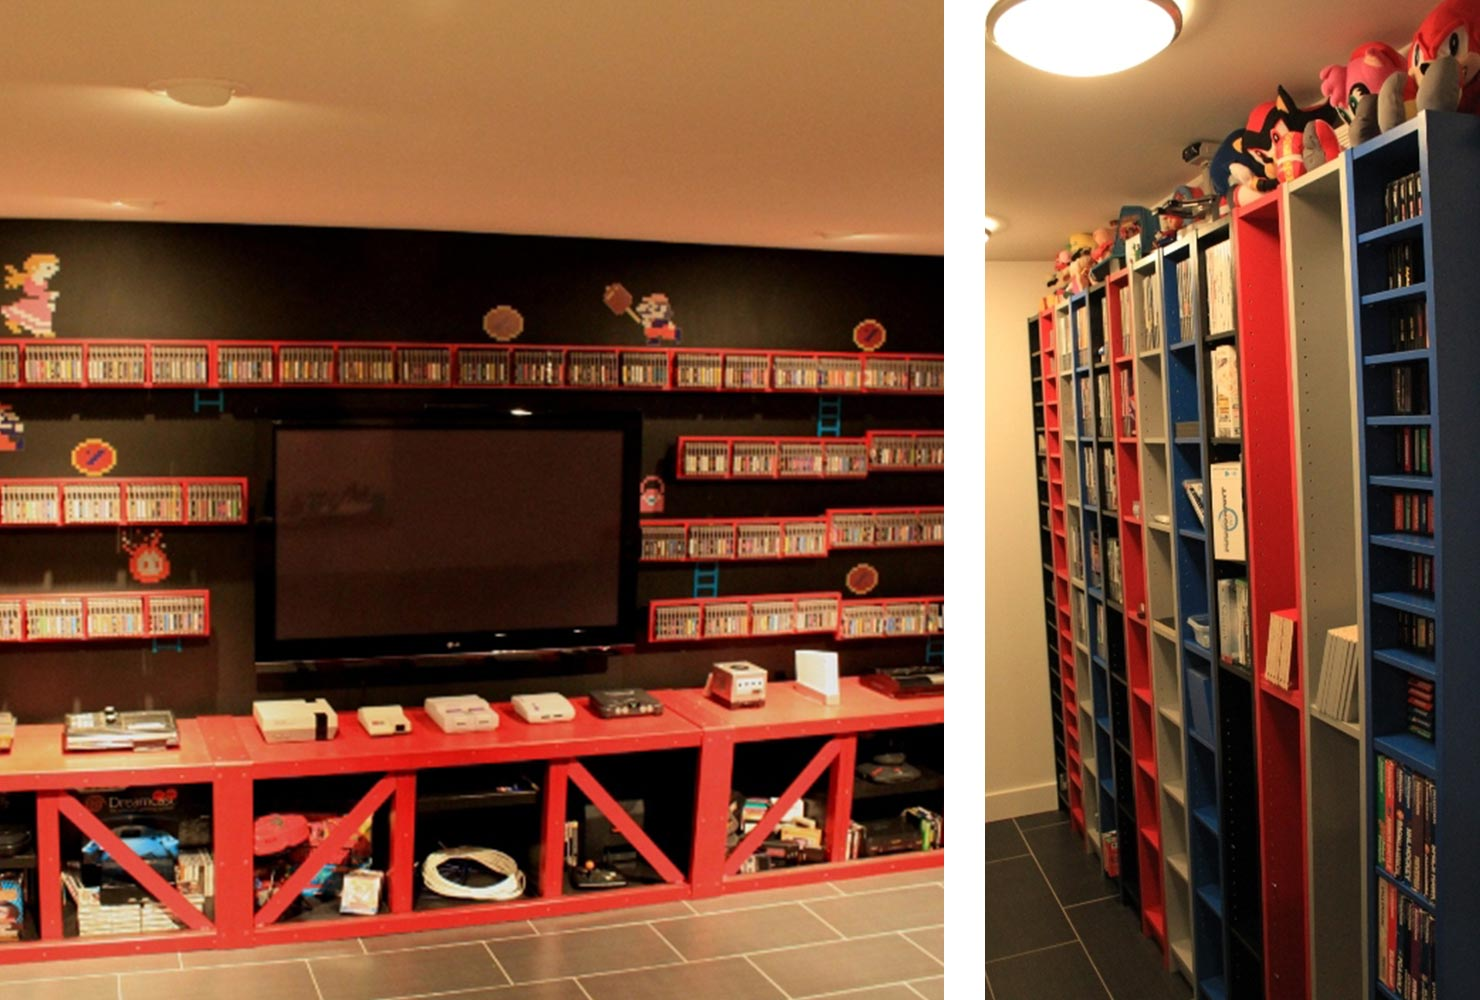 If you have a game room or recreation area in your home, it's important to have good lighting. 38 Best Game Room Ideas For Any Entertaining | Shutterfly